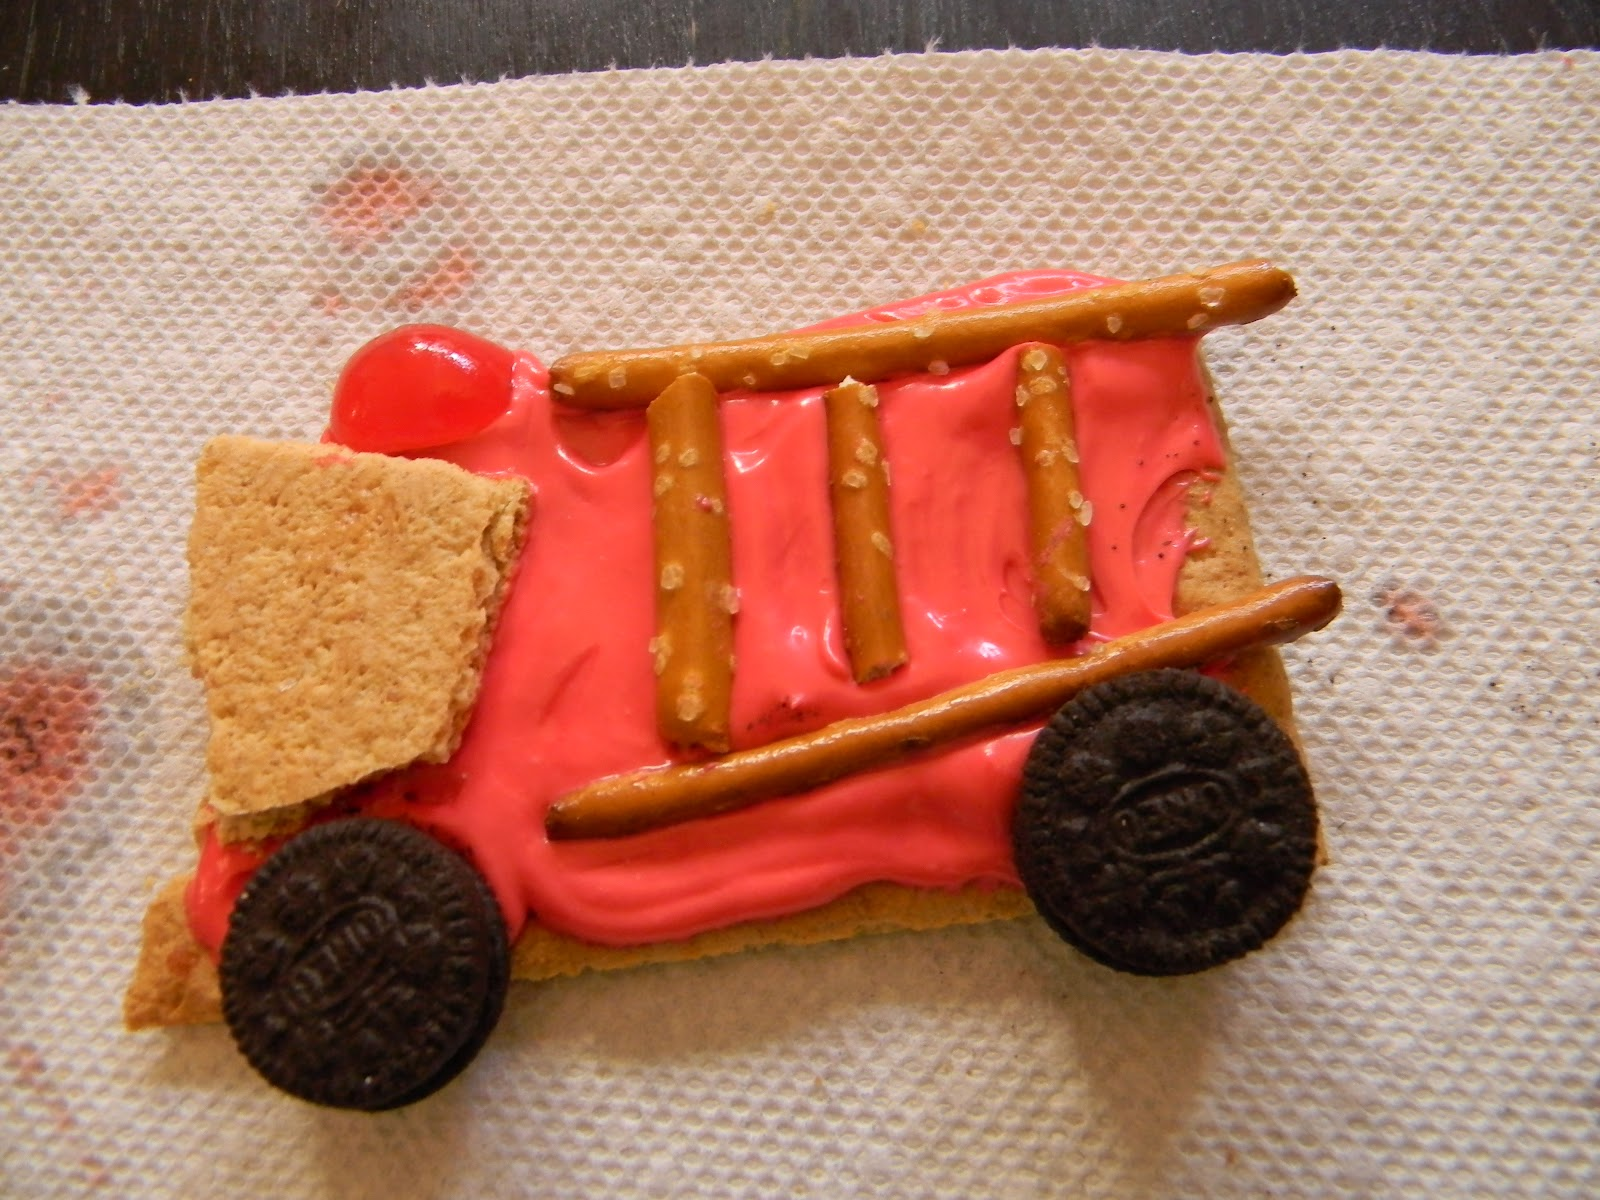 Fire Truck Graham Cracker Snack http://www.findingtheteachablemoments.com/2012/05/f-is-for-fire.html